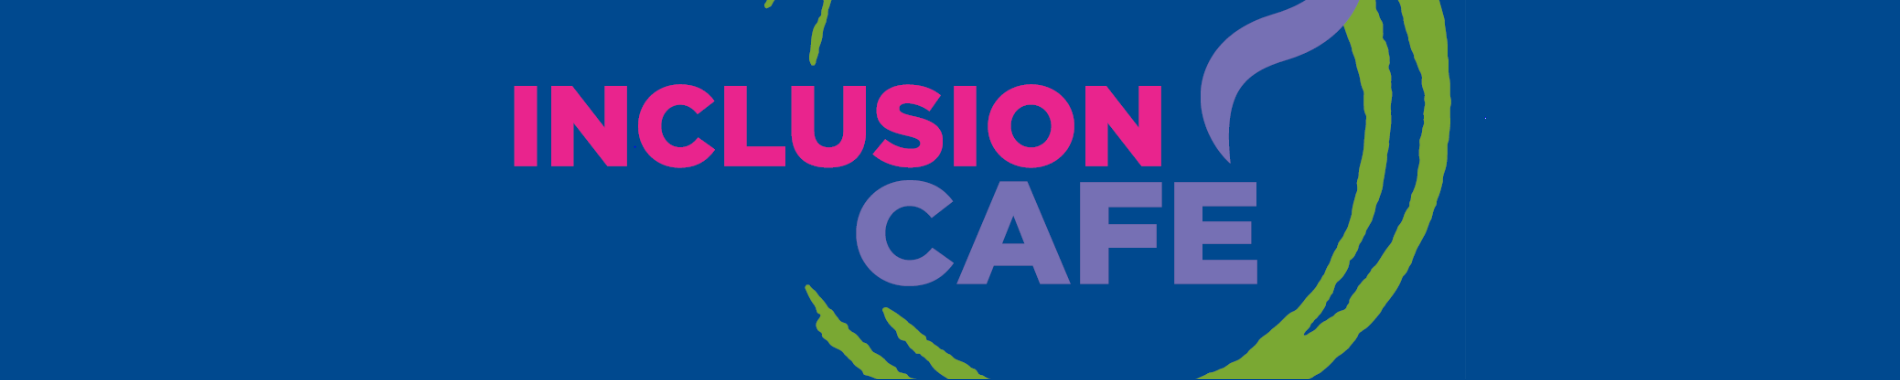 Inclusion cafe 1900x380